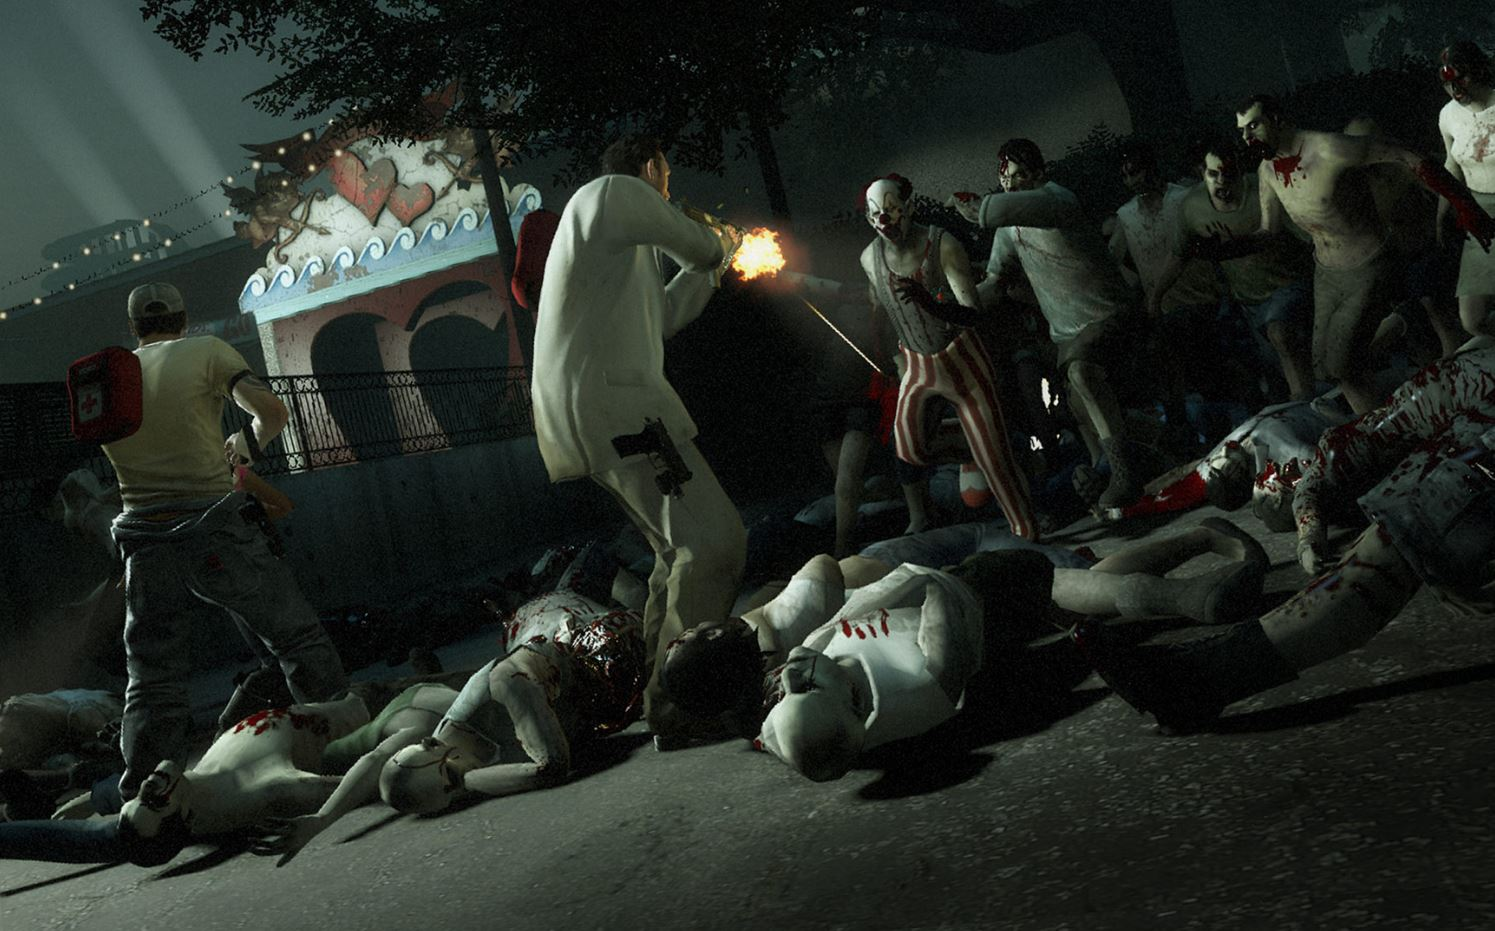 Left 4 Dead 3 is not in development, Valve confirms